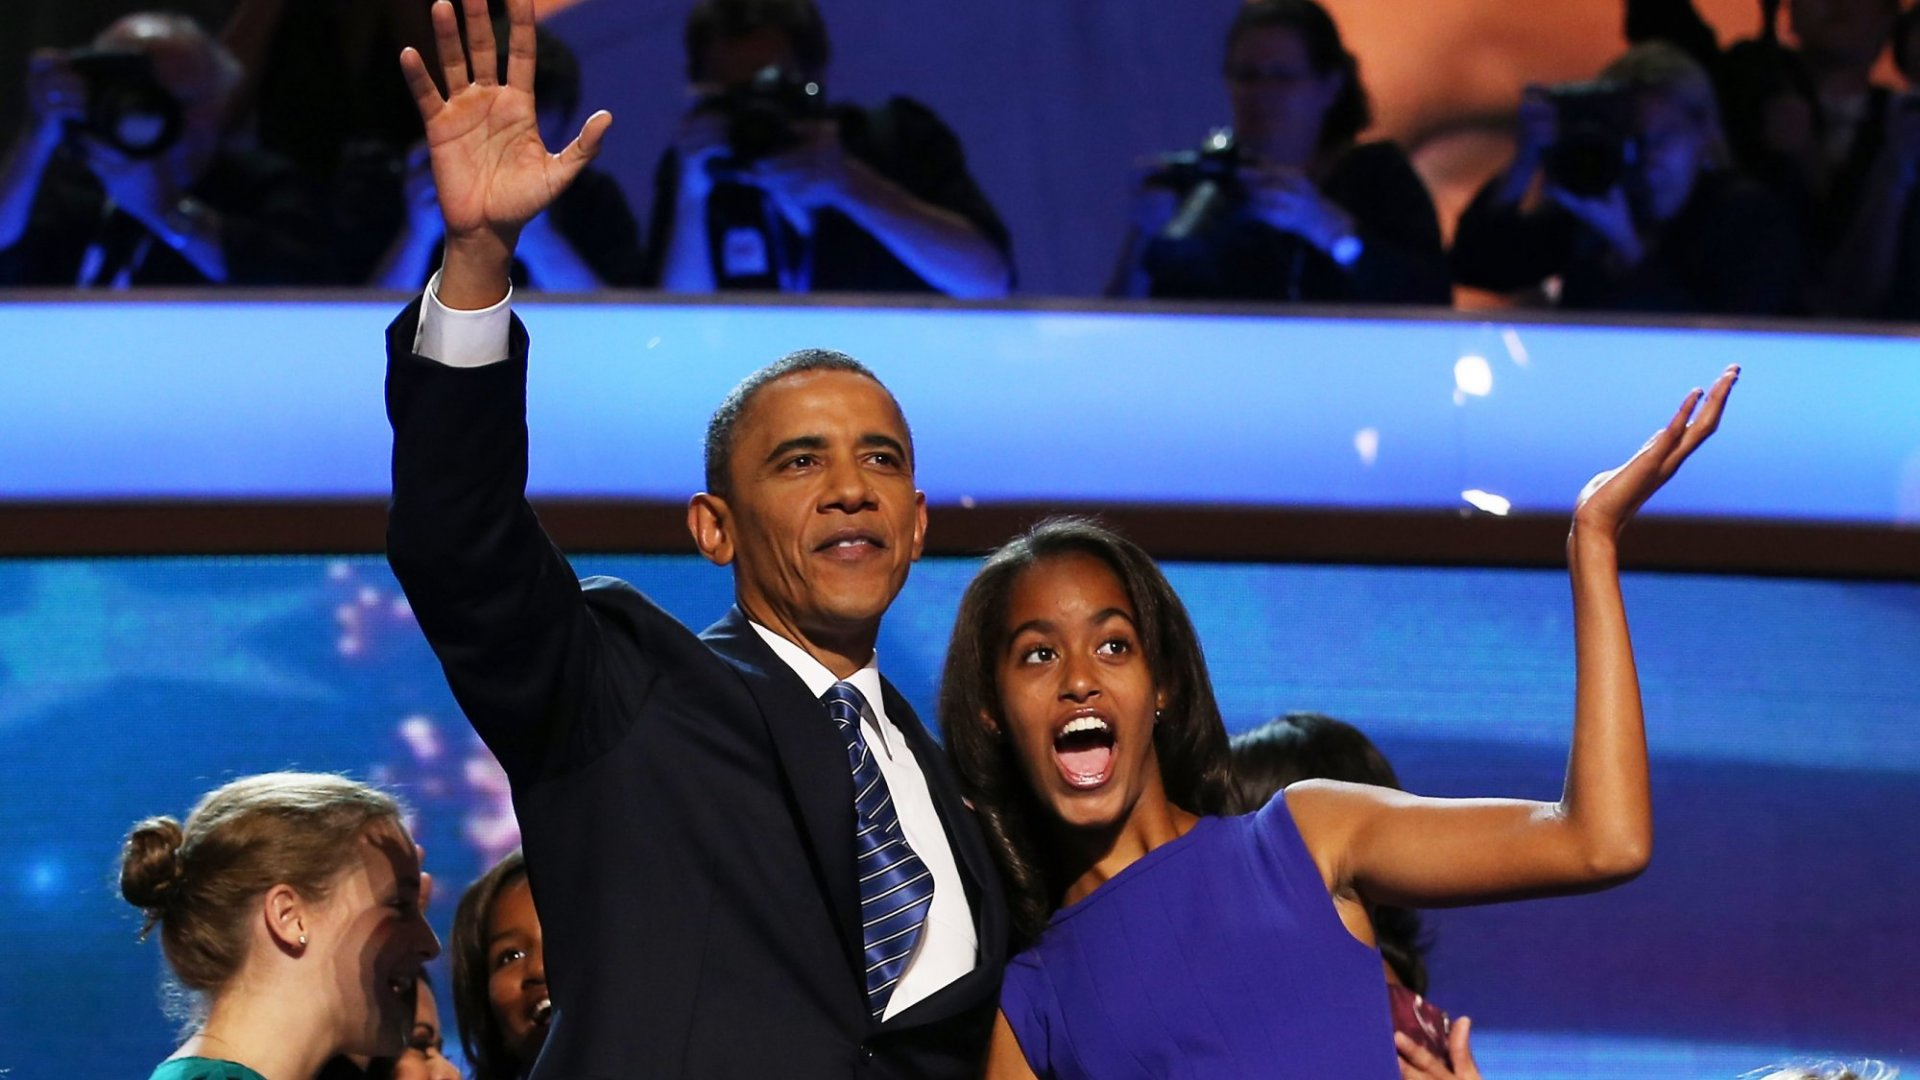 Malia Obama Is Taking a Gap Year. Here Are 3 Reasons Your Kid Should Too